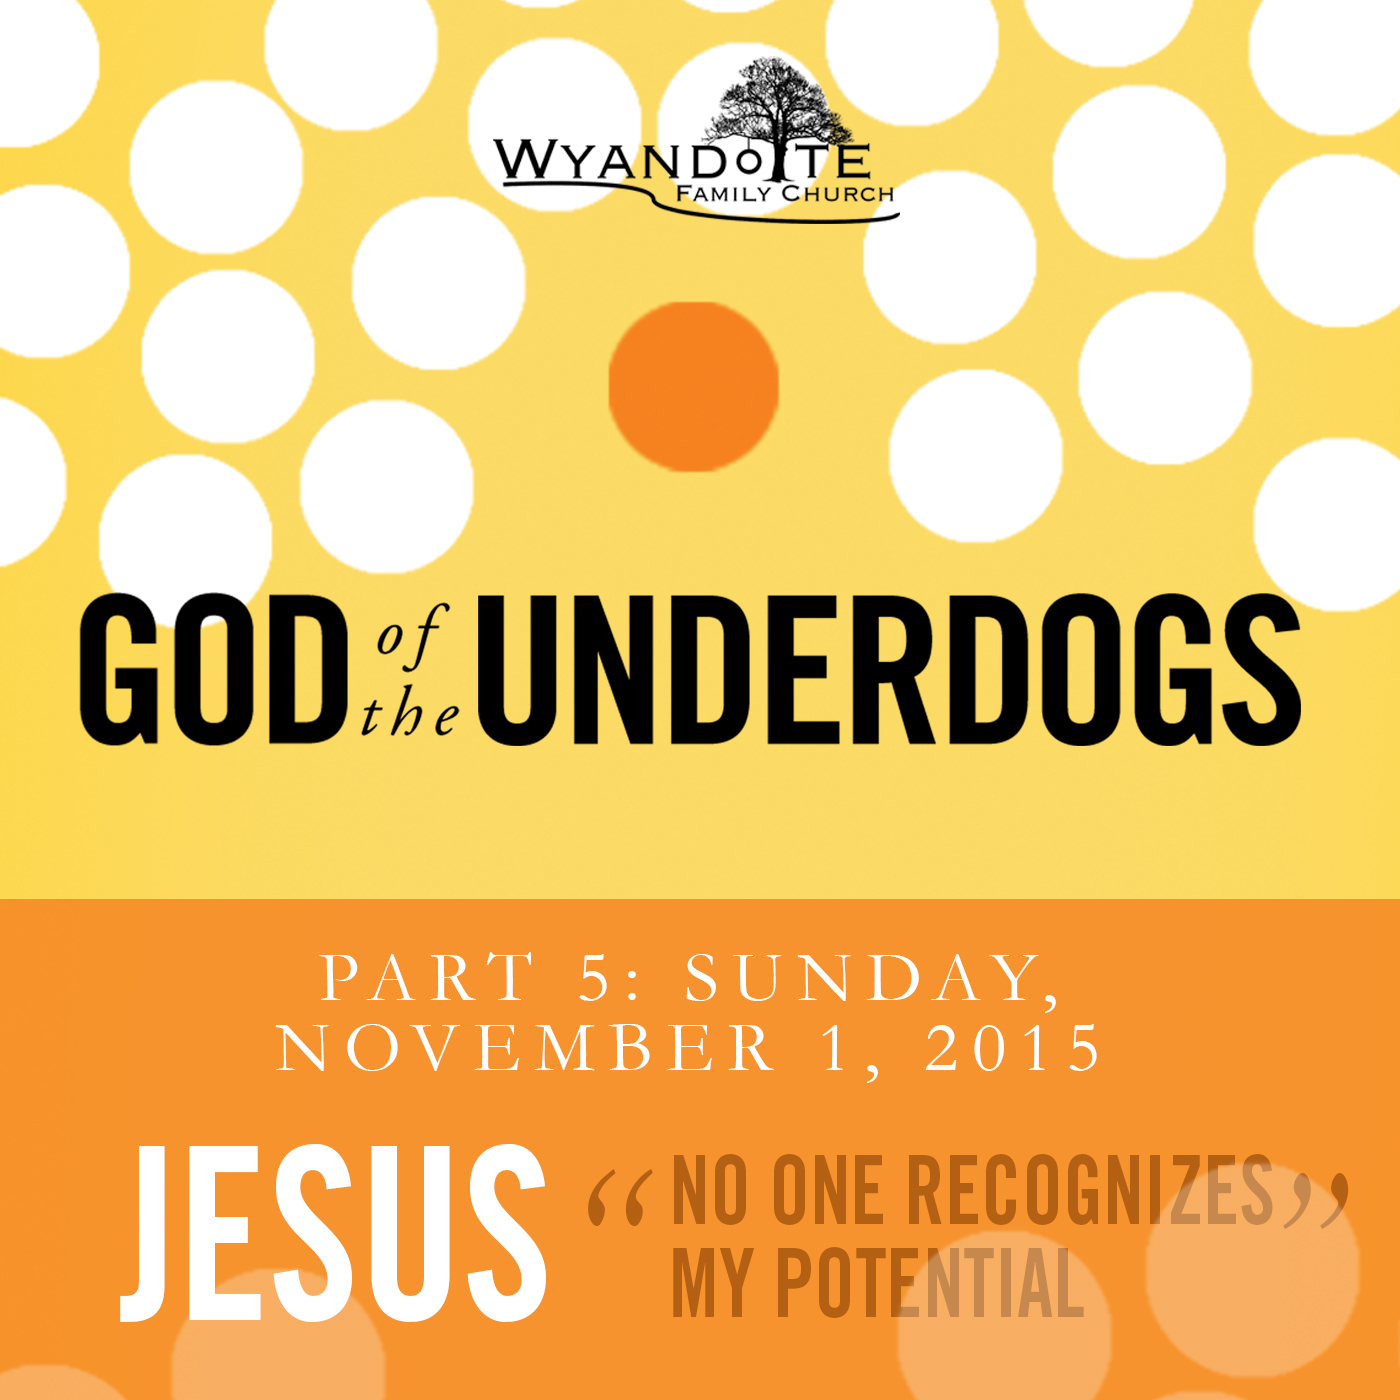 "God of the Underdog Part 5: Jesus ""No One Recognizes My Potential"""